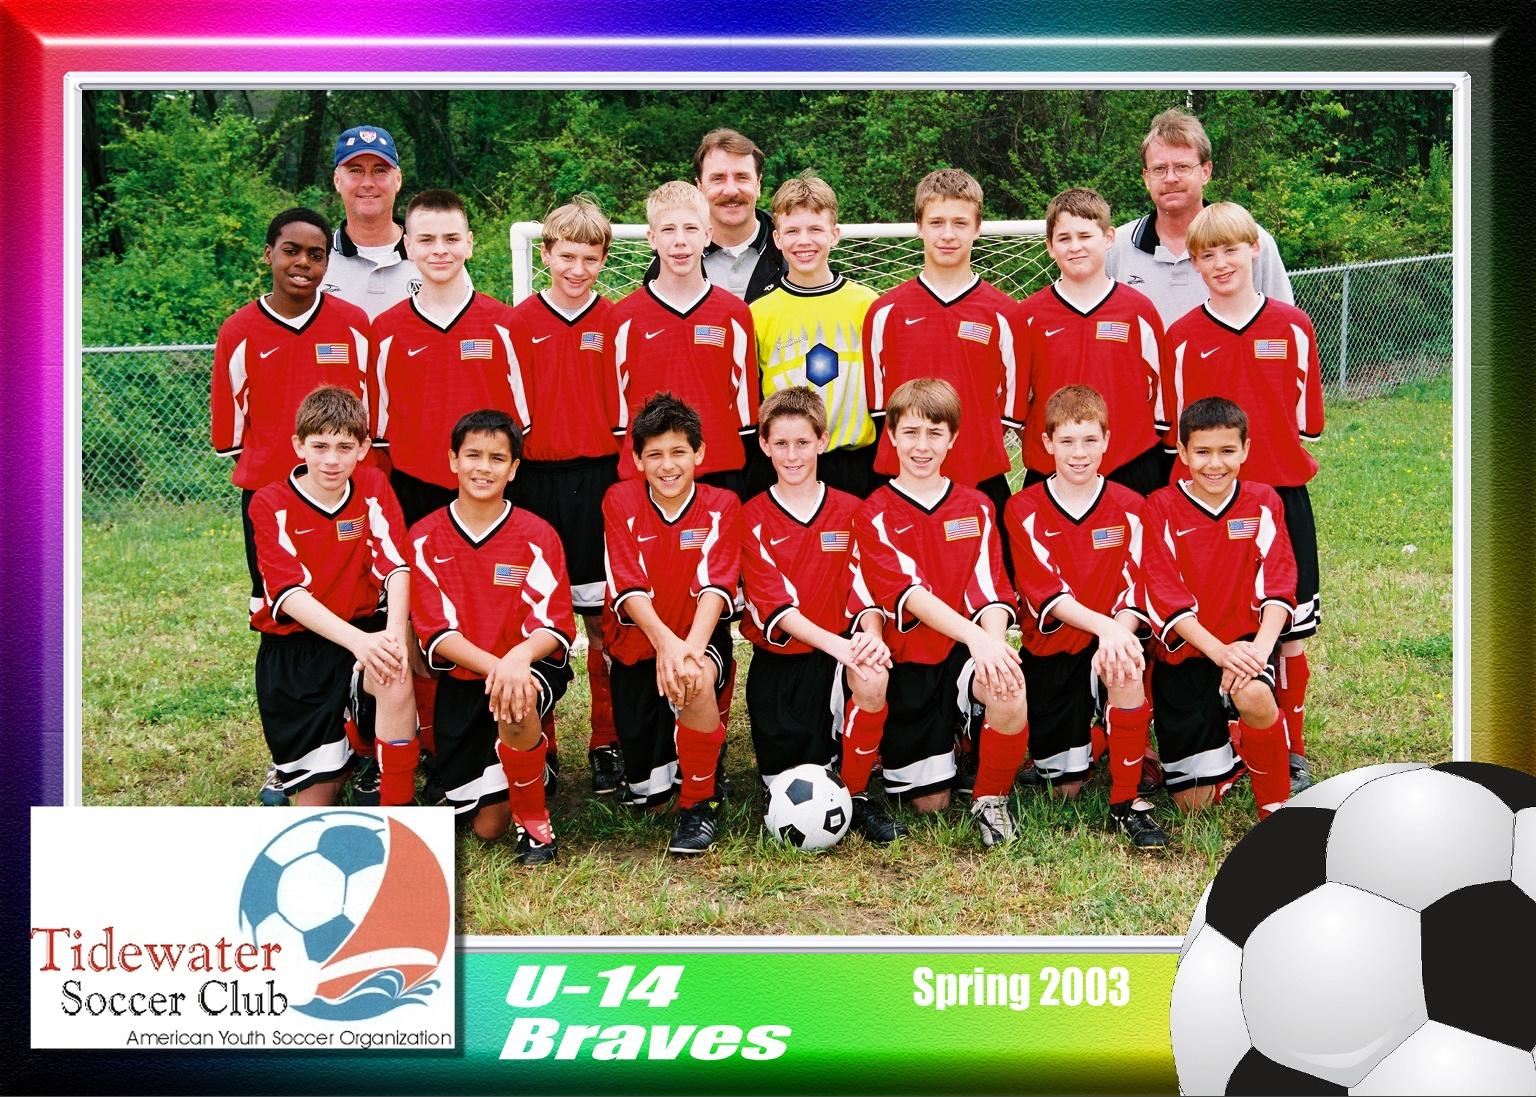 2003 SPRING U14 BRAVES